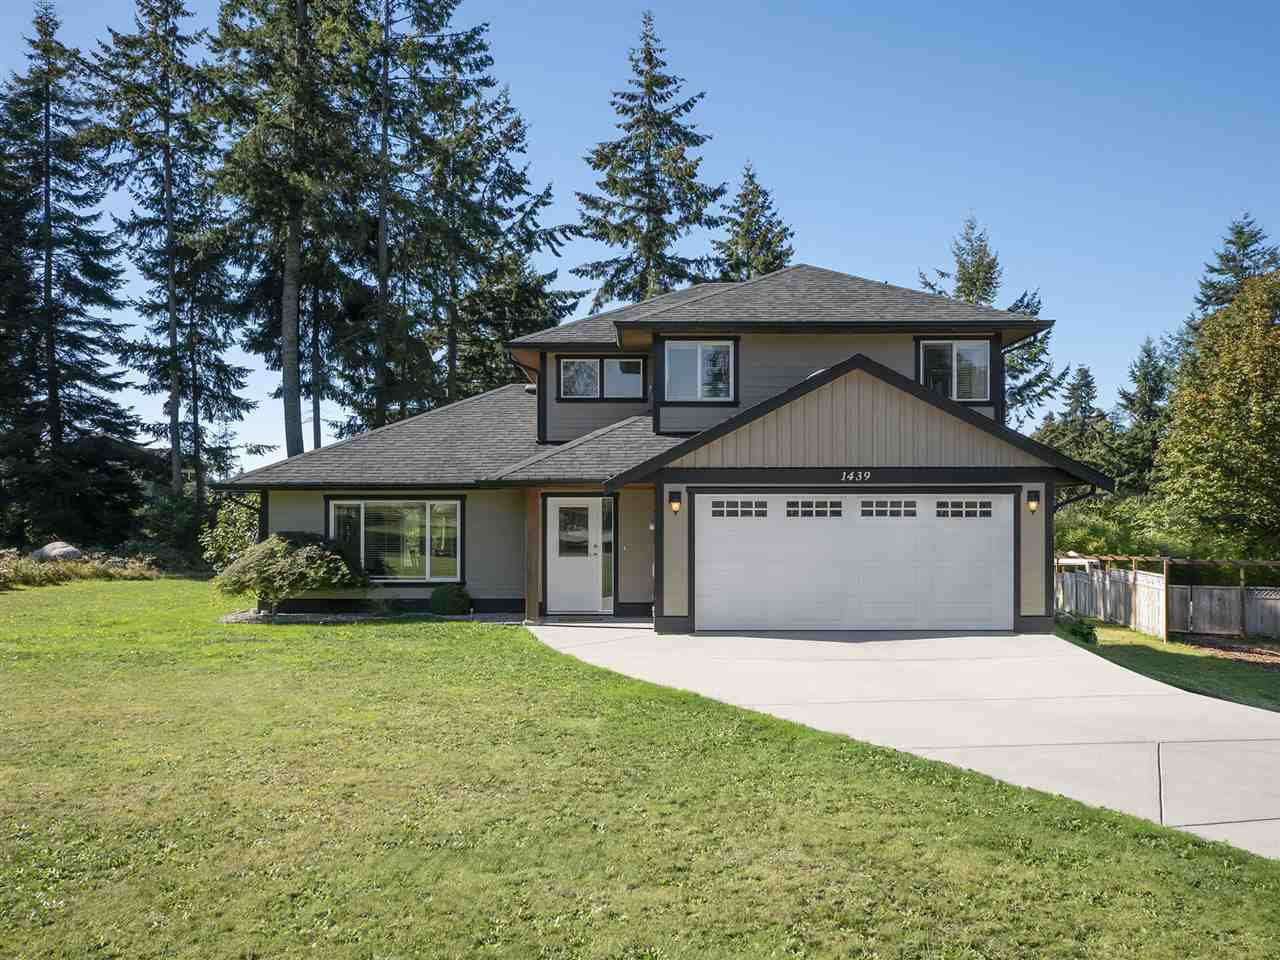 Main Photo: 1439 MOONDANCE Place in Gibsons: Gibsons & Area House for sale (Sunshine Coast)  : MLS®# R2505477